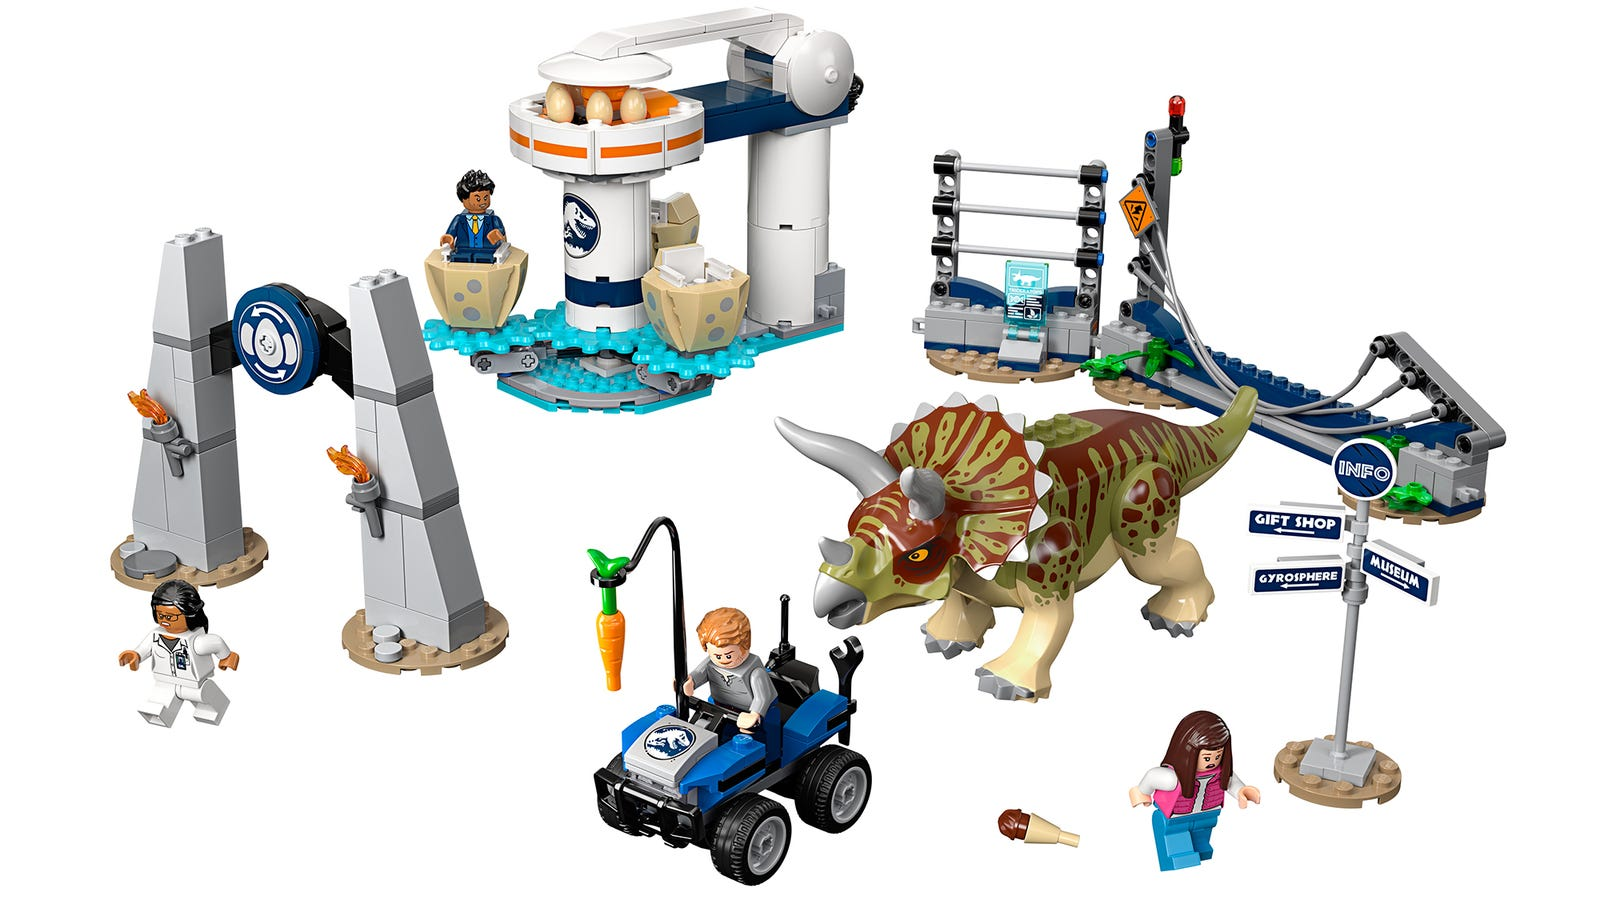 Lego Triceratops Rampage - 447 pieces - $60